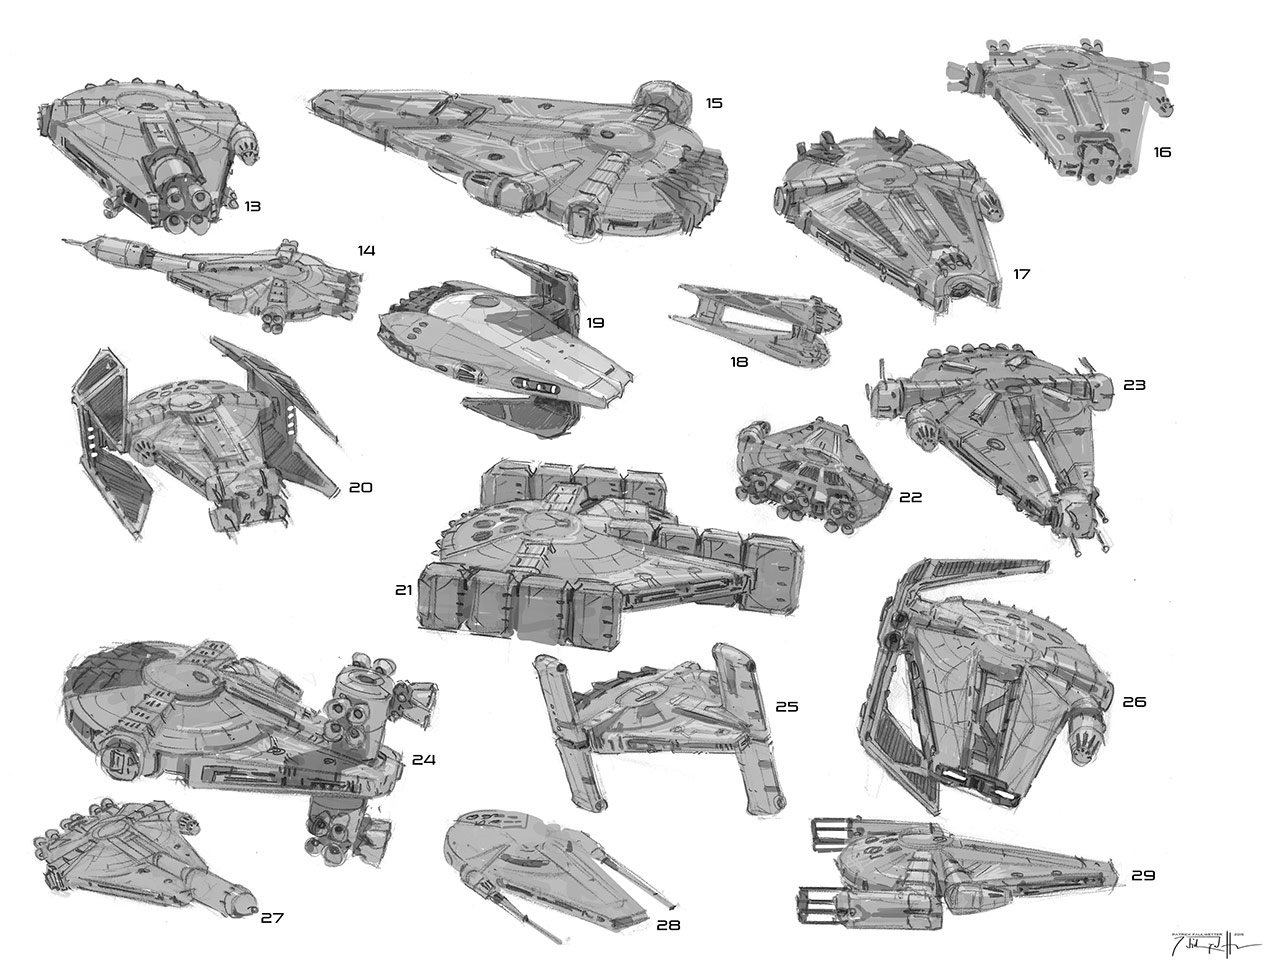 Designing The Solo A Star Wars Story Millennium Falcon